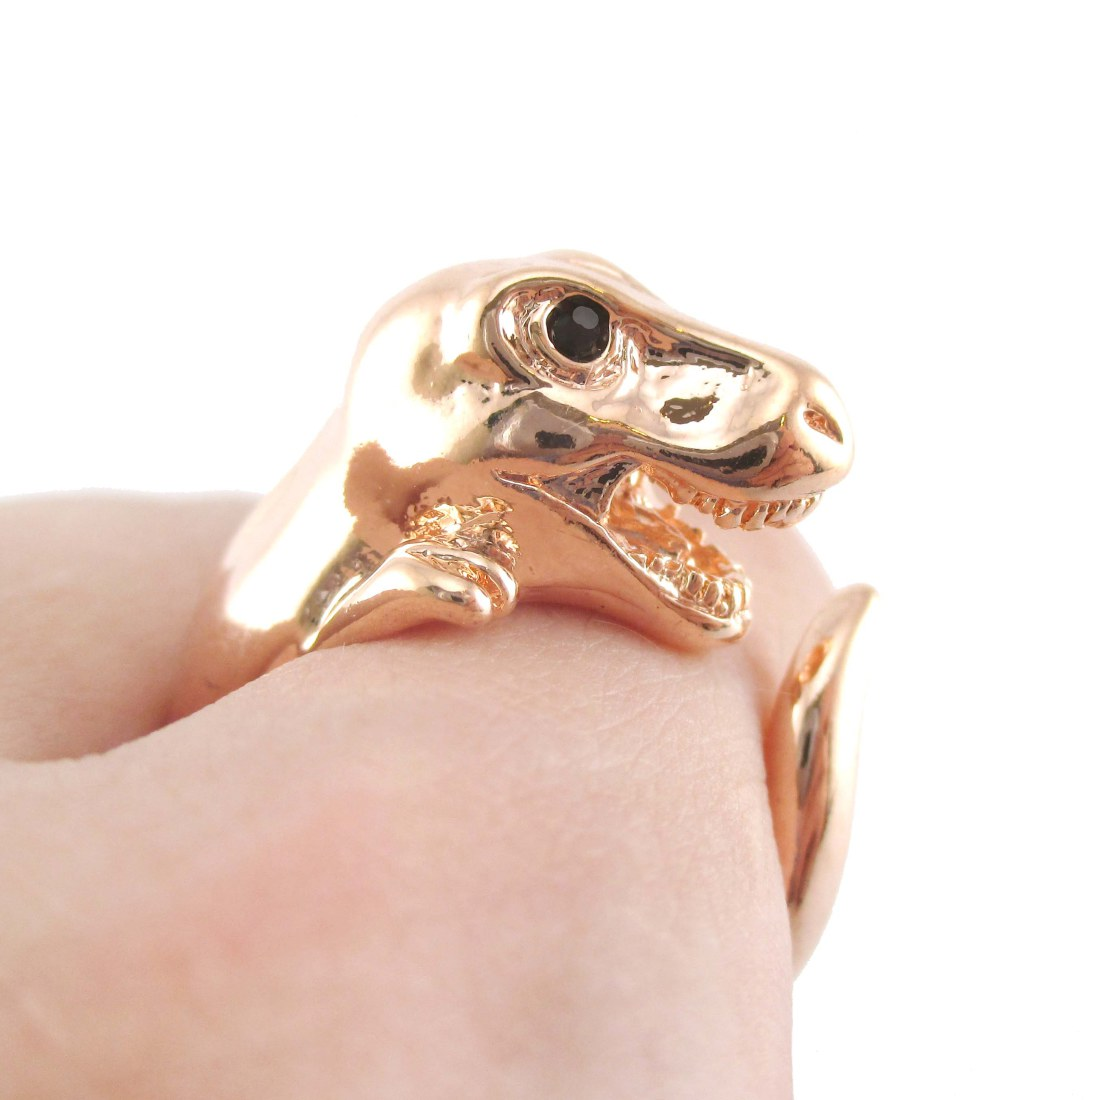 dino rings dinosaur collections re imagined by collection johan jewelry bone